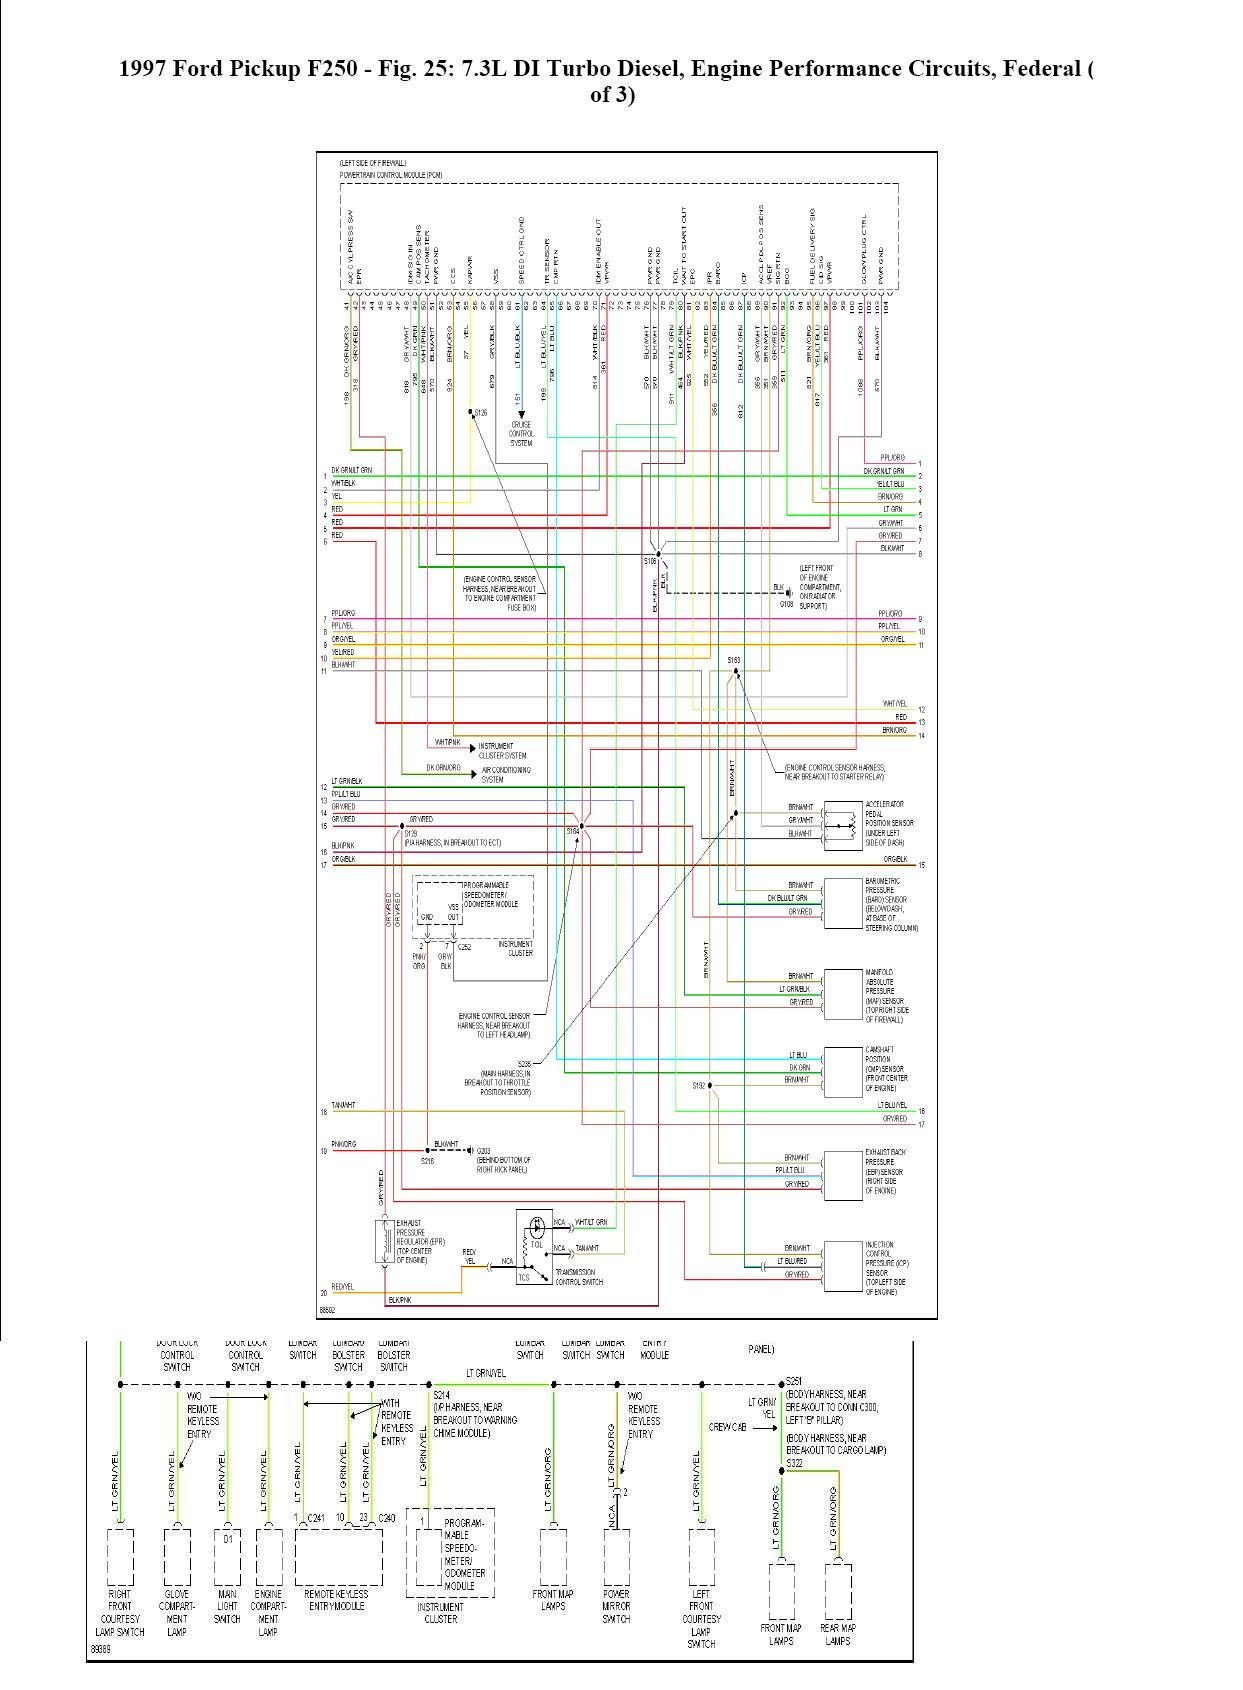 1996 Ford F150 Engine Wiring Diagram And Ford F Fuel System Diagram Getting Started Of In 2020 F150 Ford F150 1996 Ford F150